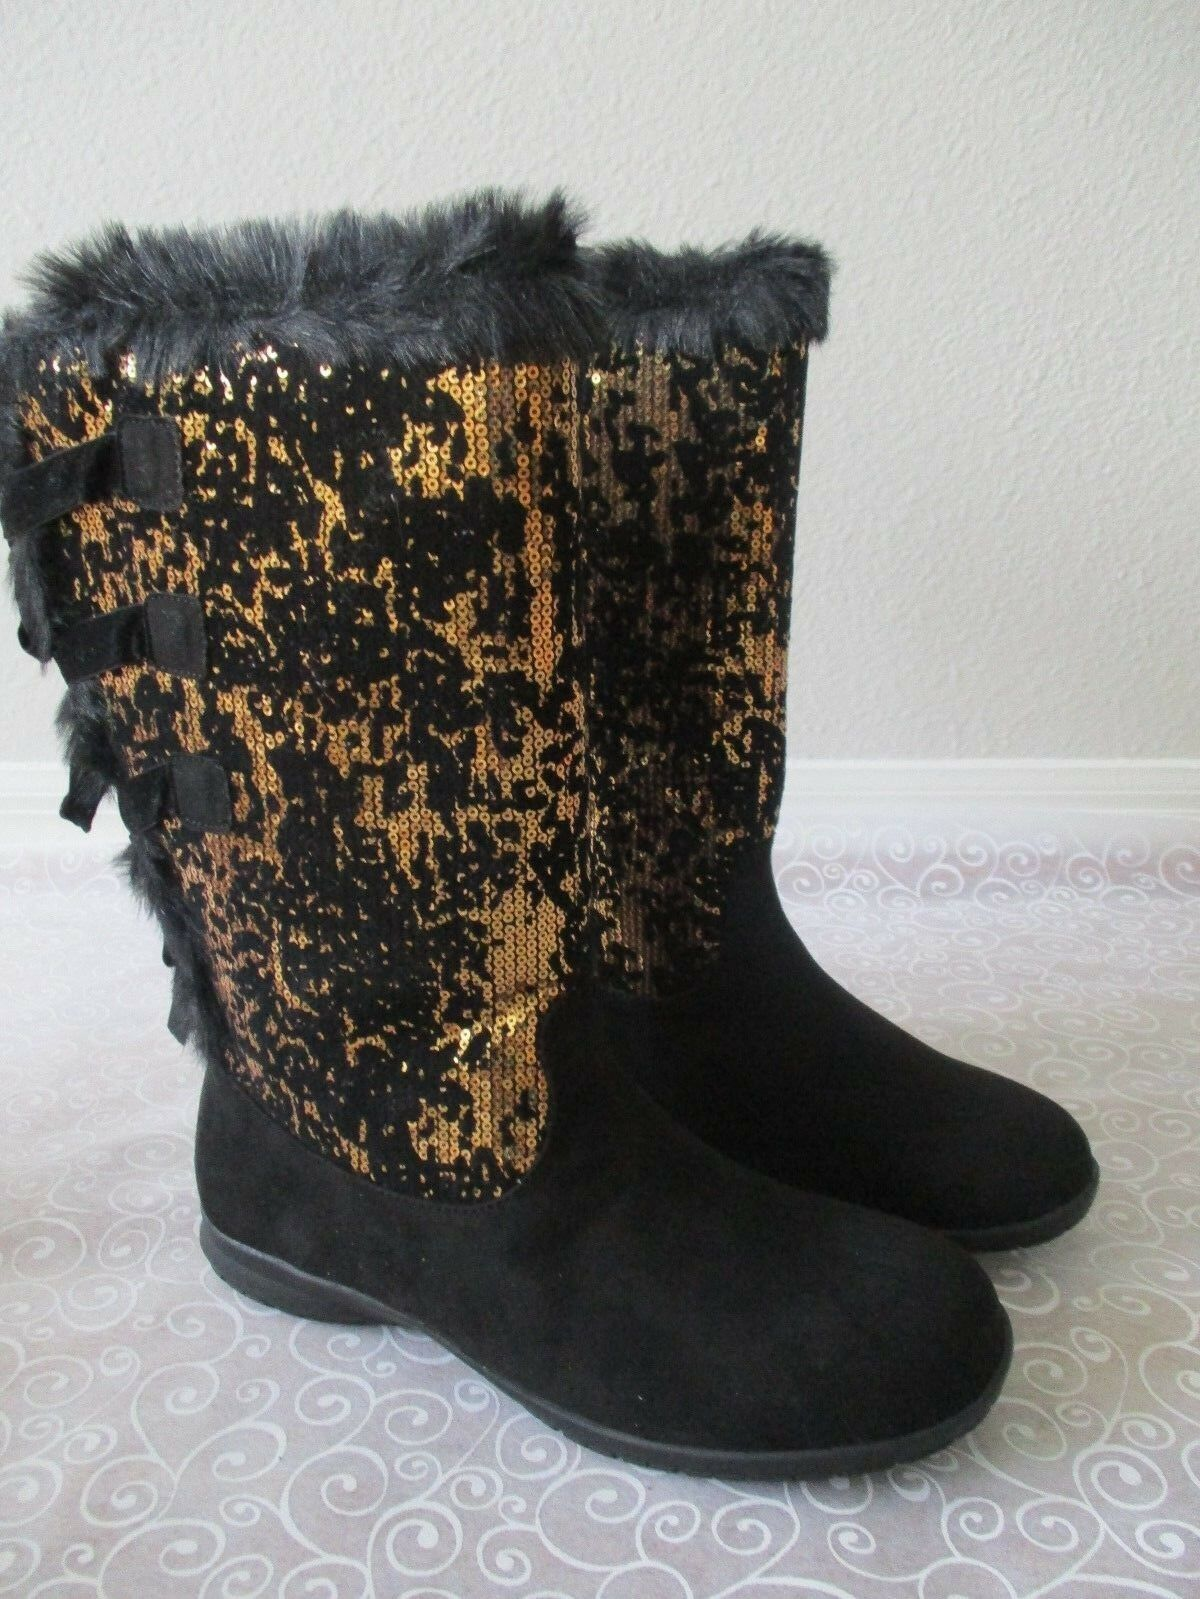 JOAN BOYCE BLACK & gold SEQUIN FAUX FUR LINNING BOOTS SIZE 10 M - NEW